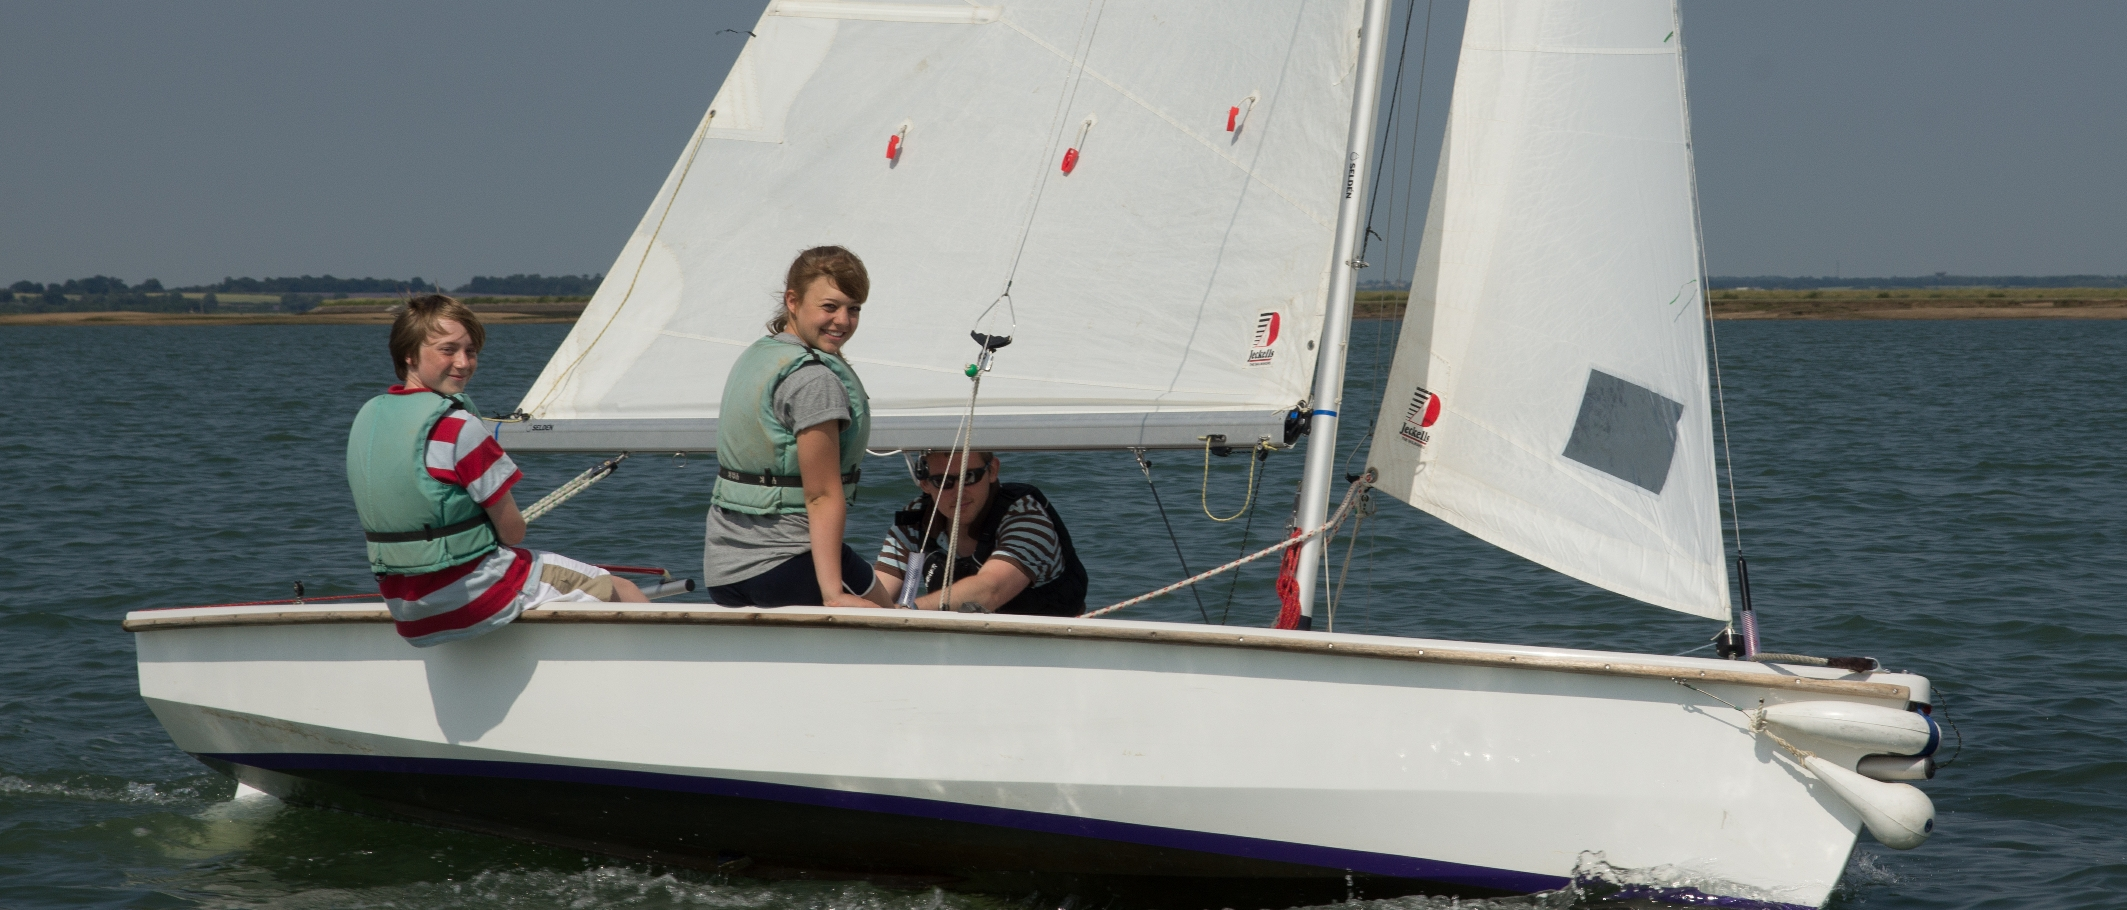 Sailing at Fellowship Afloat